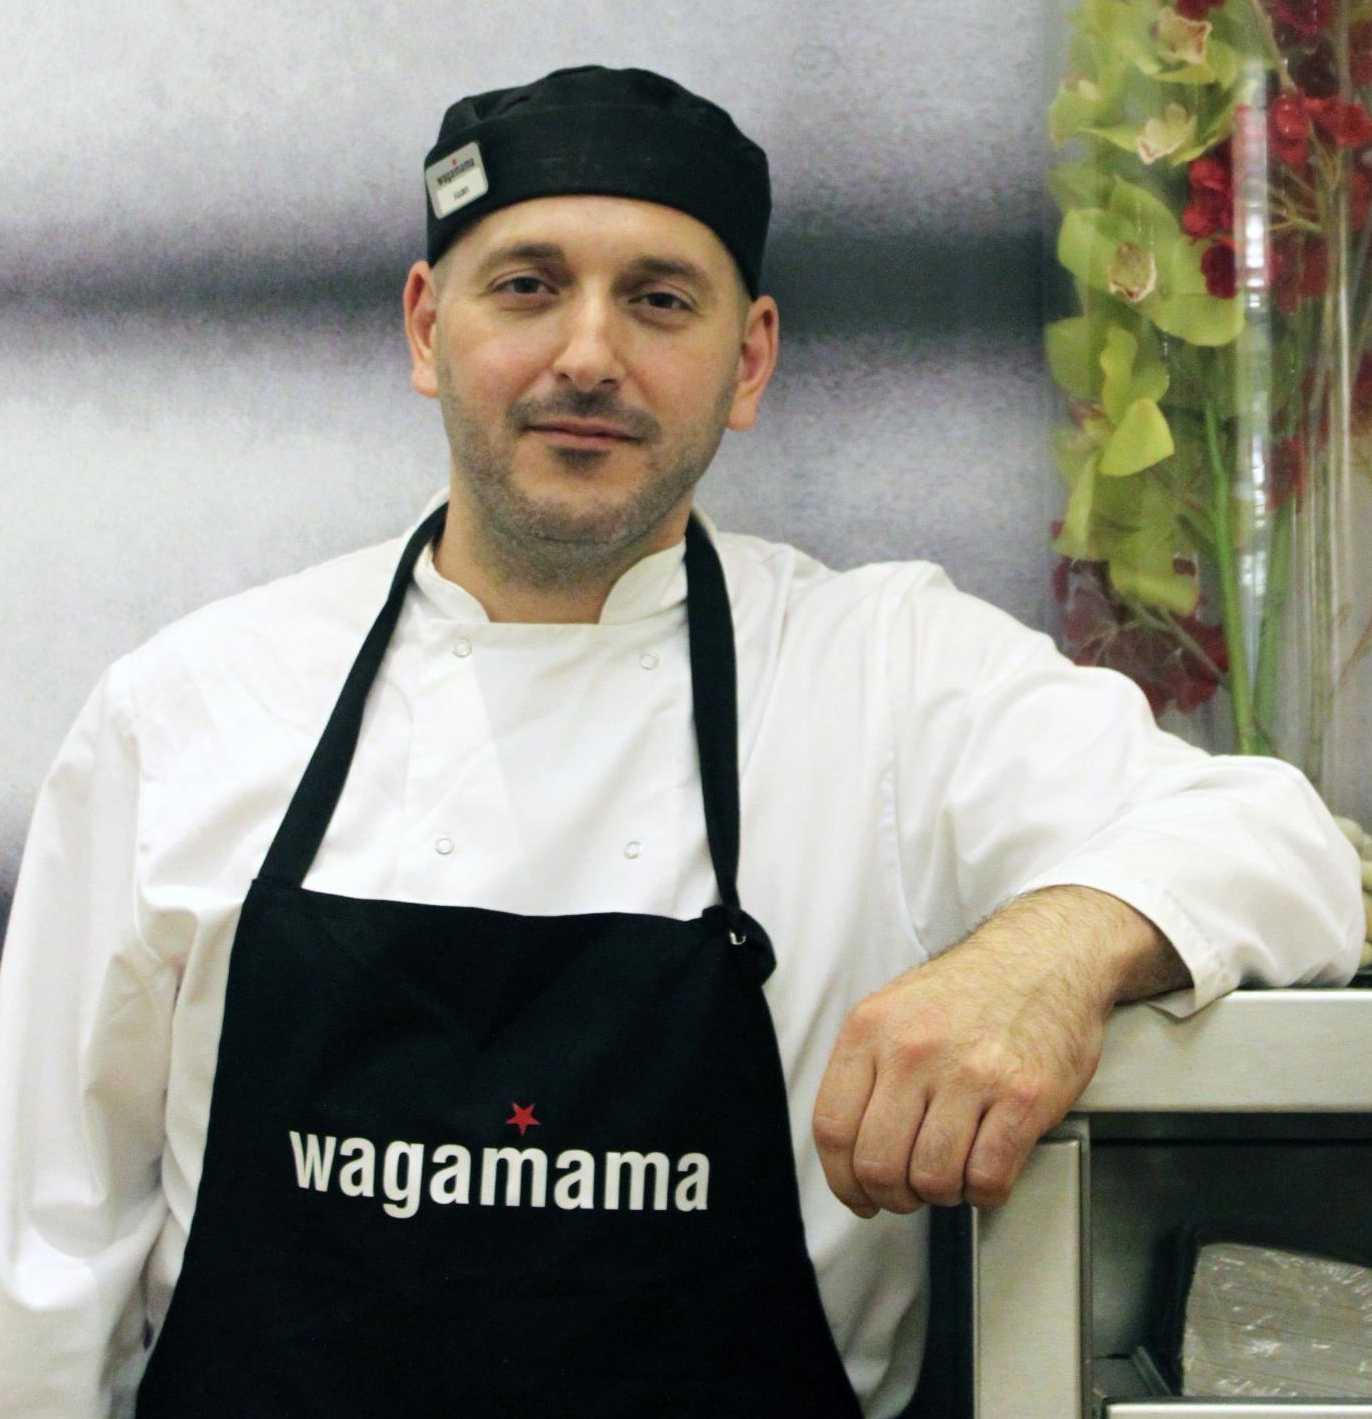 Head Chef of Wagamama Dublin Juan Manteca